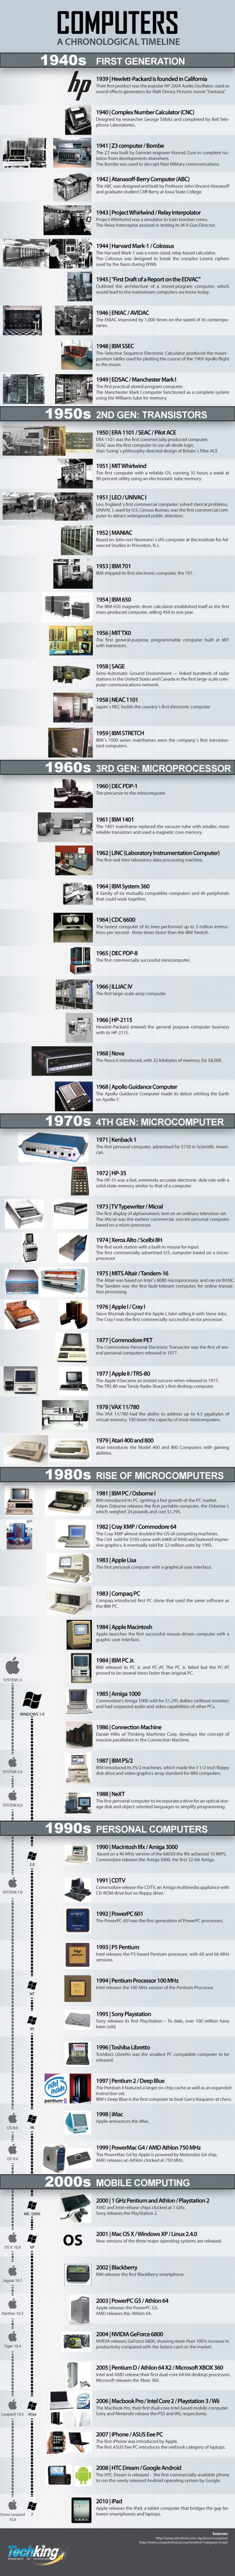 A Comprehensive History of Computers